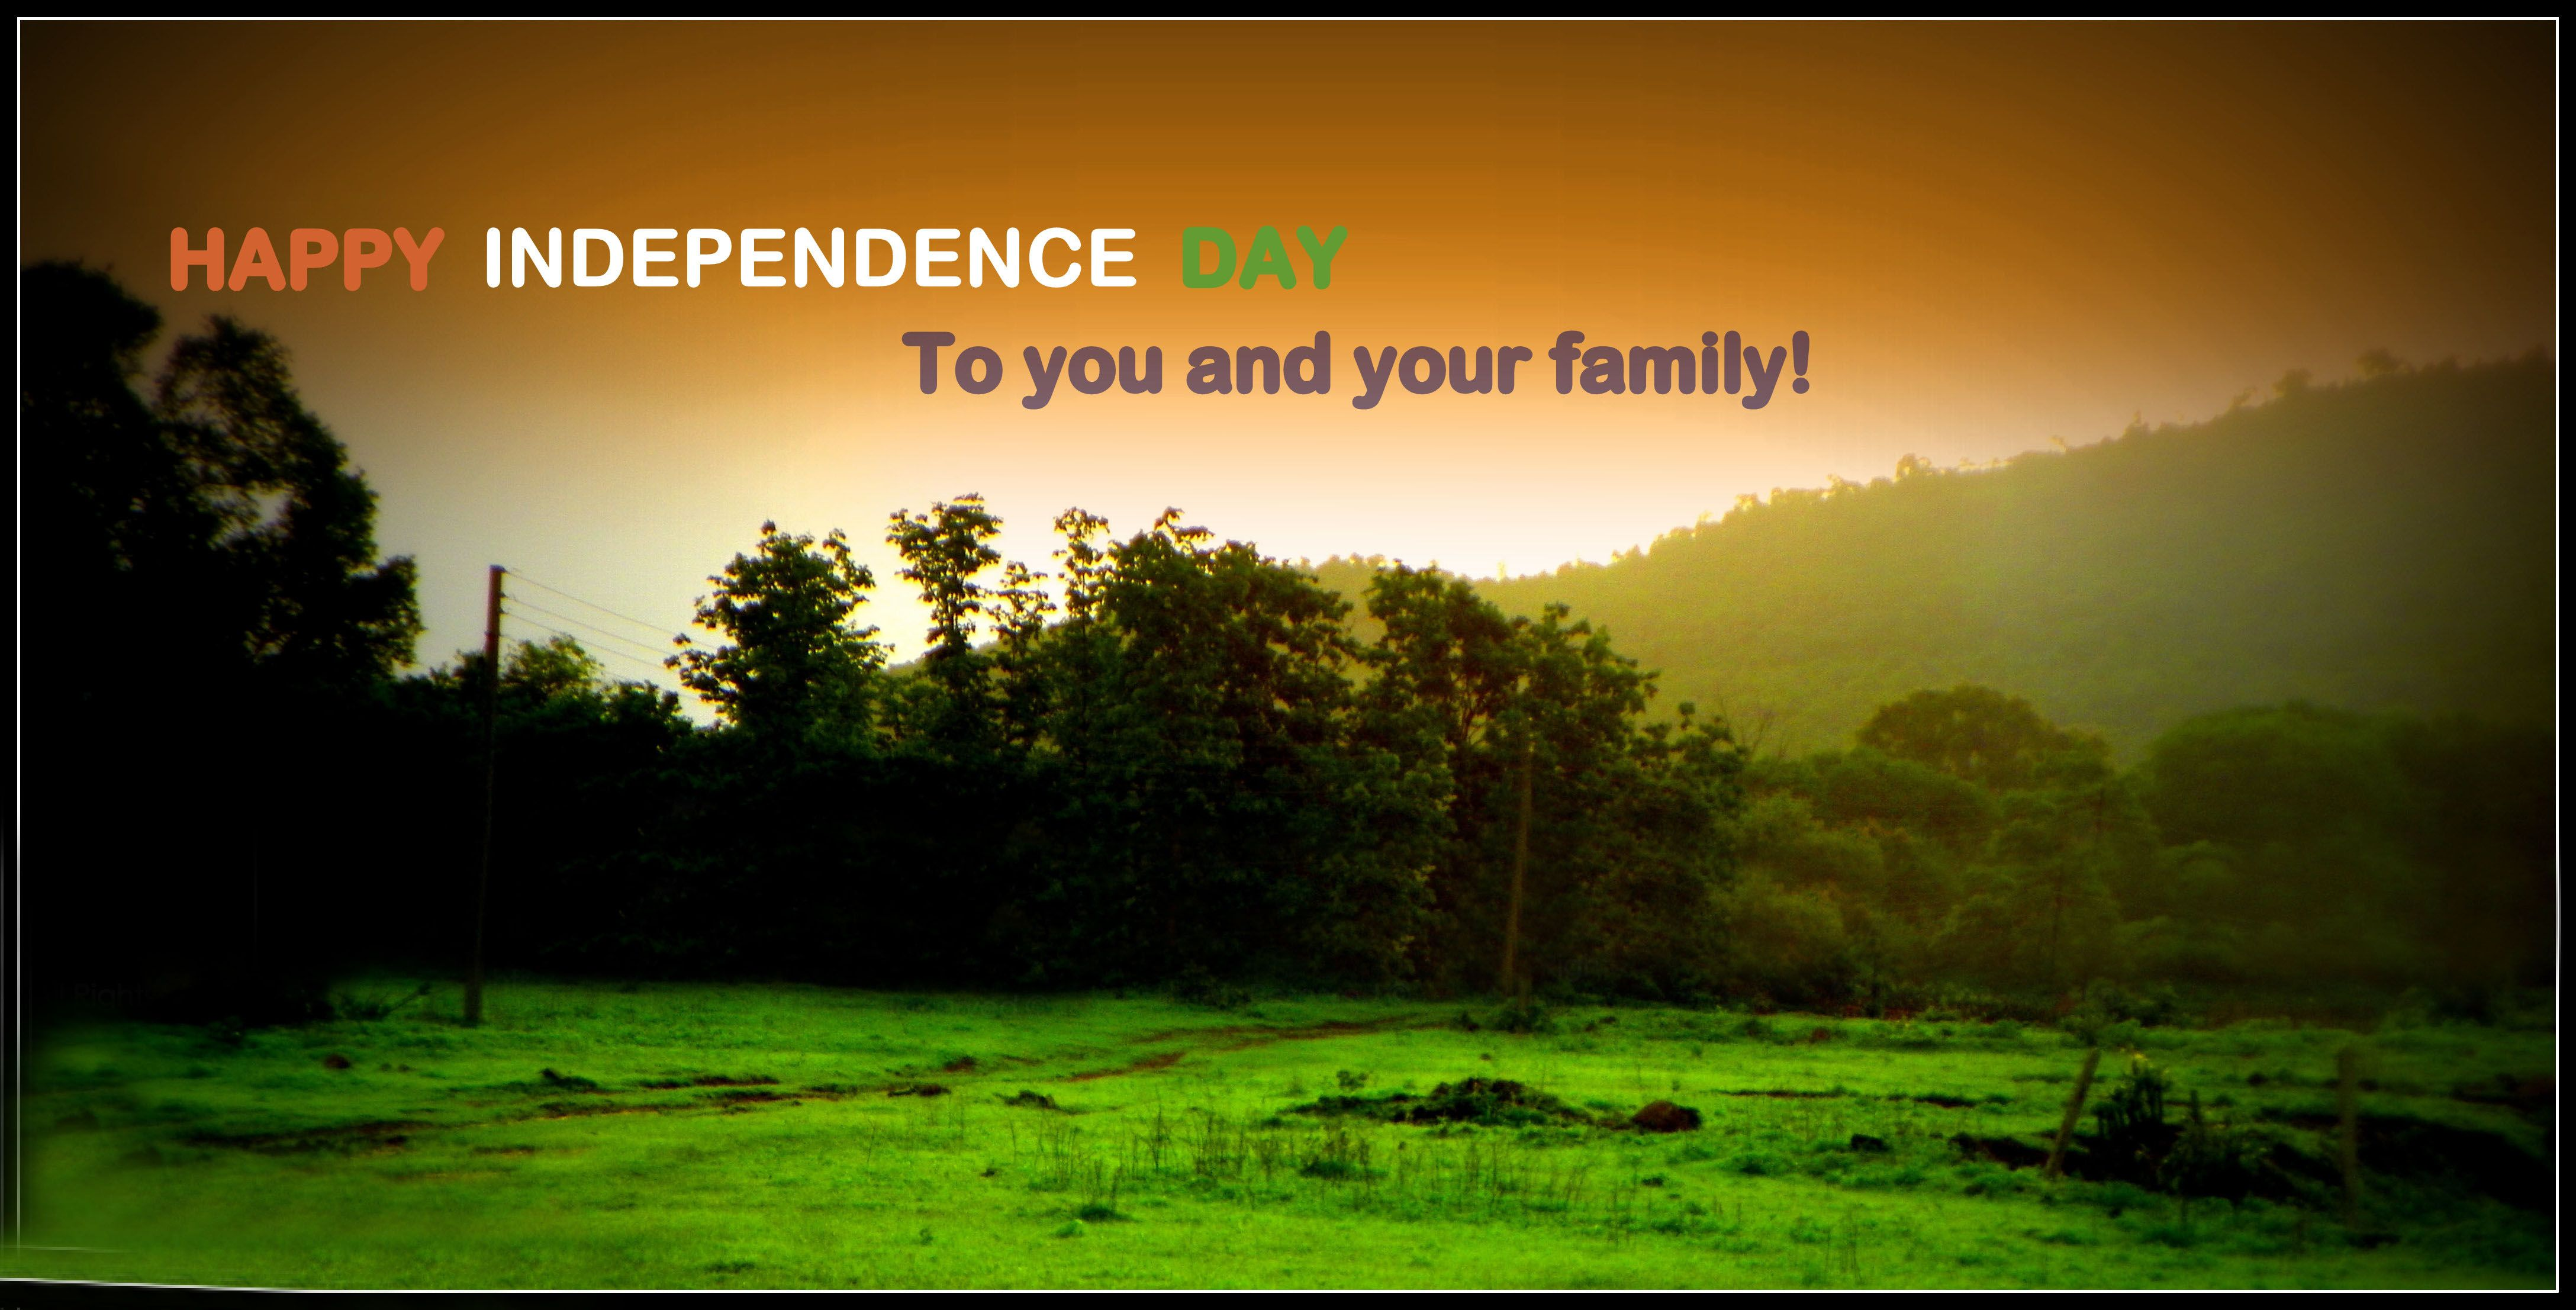 Happy Independence Day Independence Day Images Independence Day Message Independence Day Background